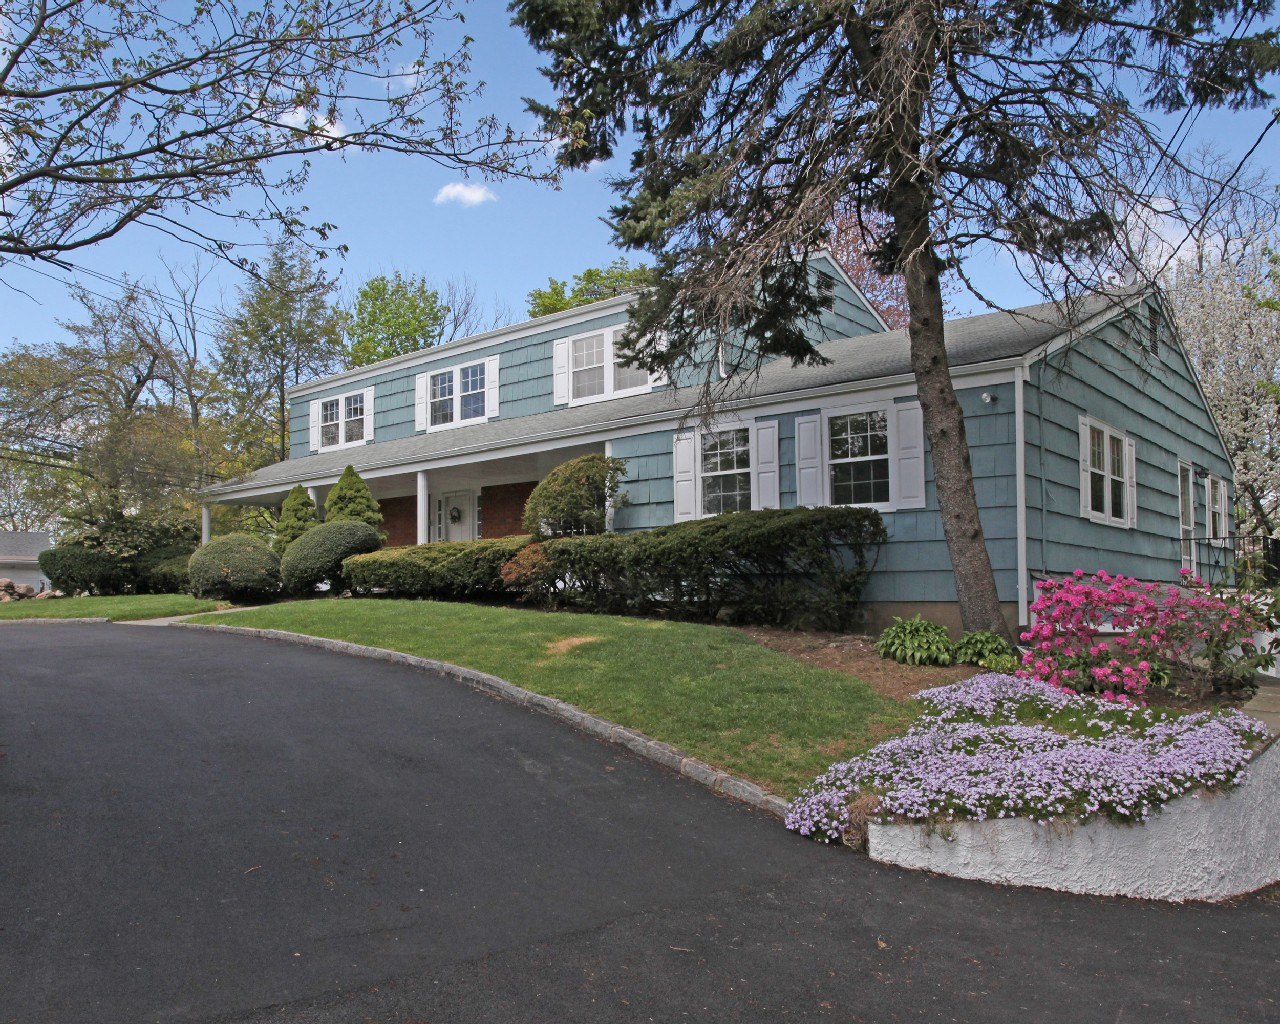 Single Family Home for Sale at Corner Lot Center Hall Colonial 27 Old Lyme Road Scarsdale, New York 10583 United States